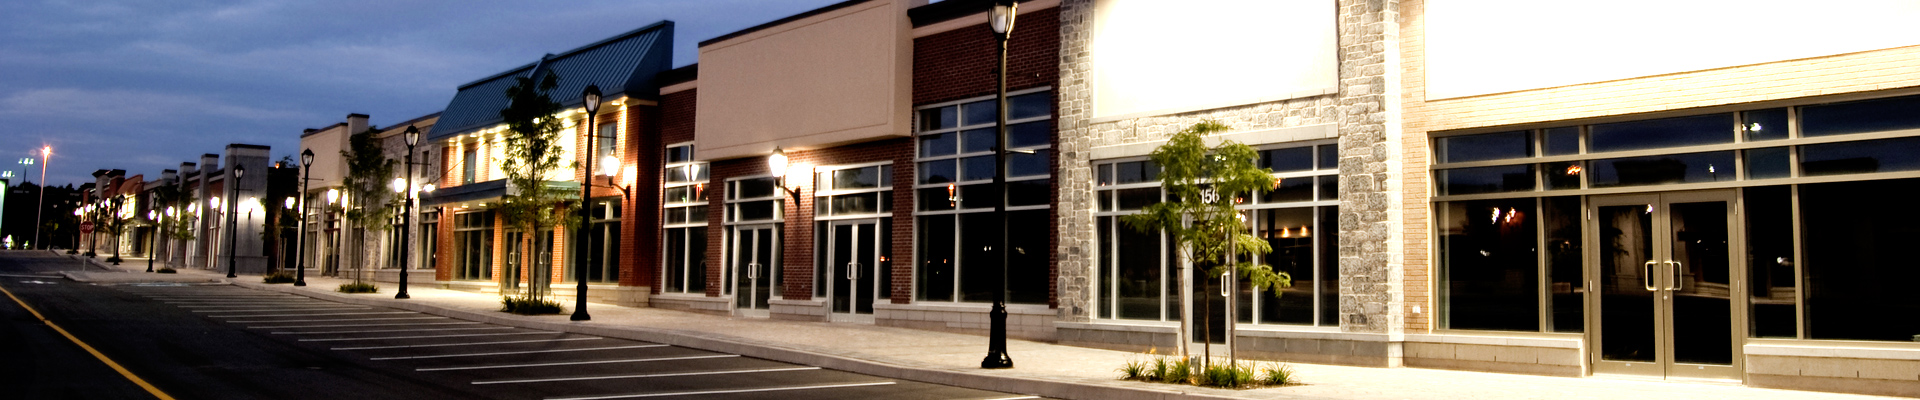 commercial-paving-business-storefronts